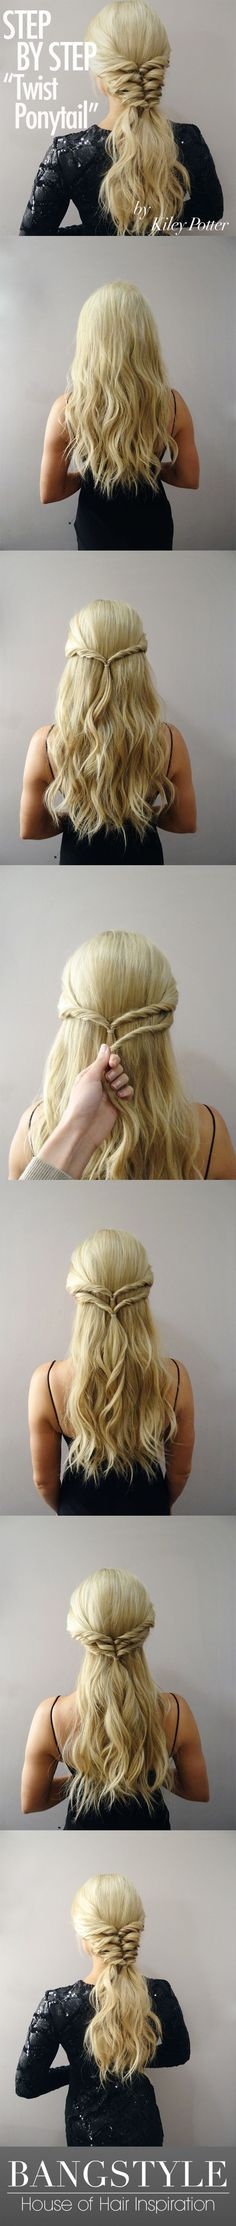 Get the Look! Twist Ponytail Tutorial by Kiley Potter+ - Get the Look! Twist Ponytail Tutorial by Kiley Potter+ - Easy Hairstyles For School, Trendy Hairstyles, Straight Hairstyles, Braided Hairstyles, Wedding Hairstyles, Festival Hairstyles, Dress Hairstyles, Pixie Haircut, Ponytail Hairstyles